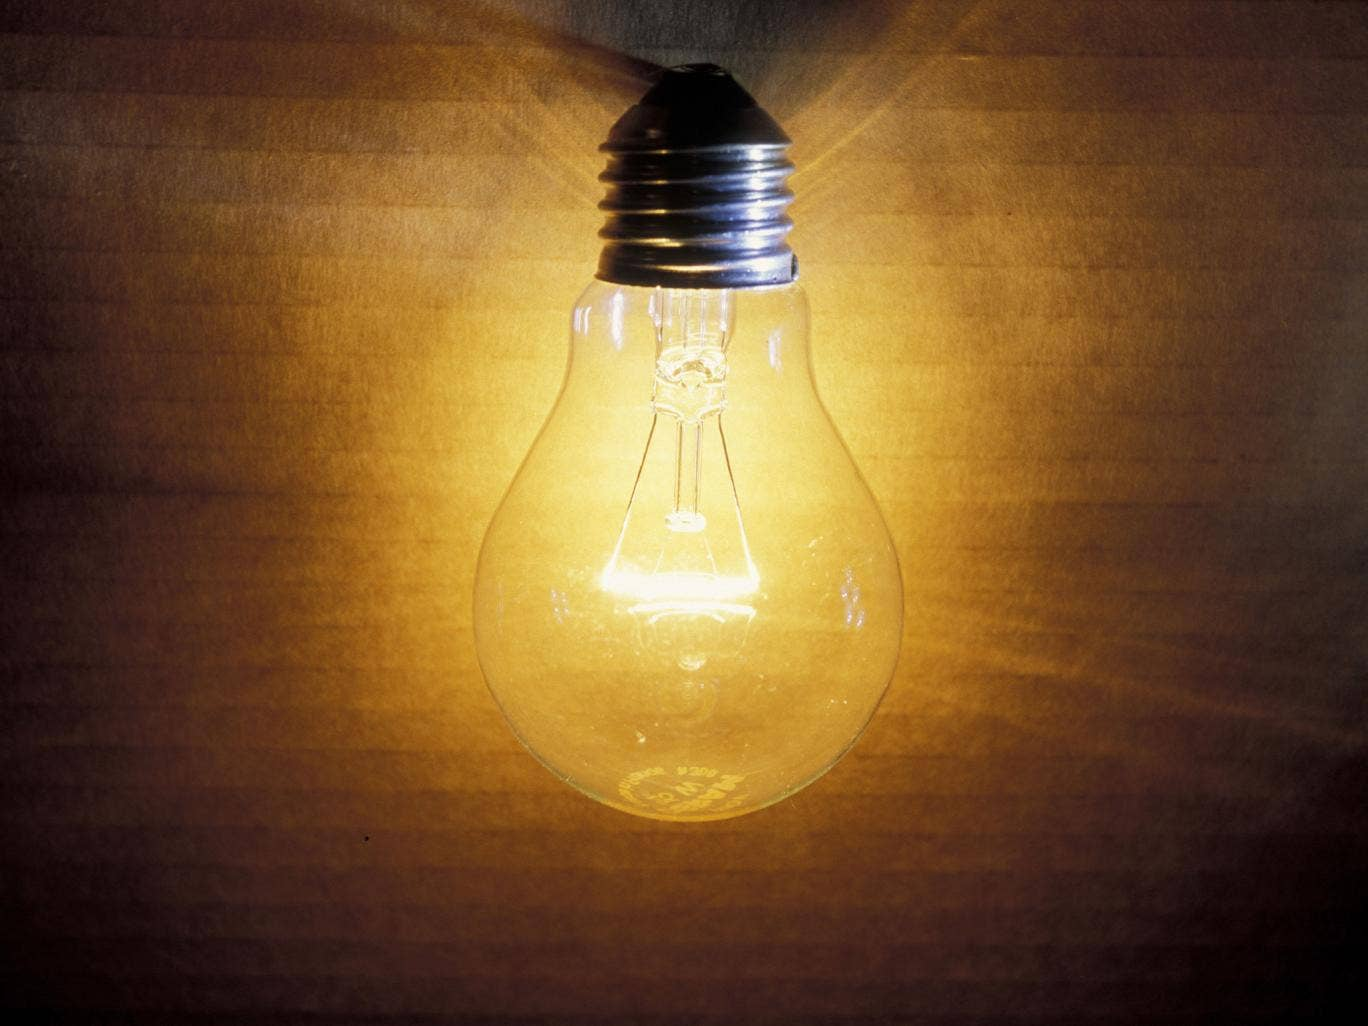 Old fashioned light bulbs could be set for comeback after 39 light recycling 39 breakthrough A light bulb